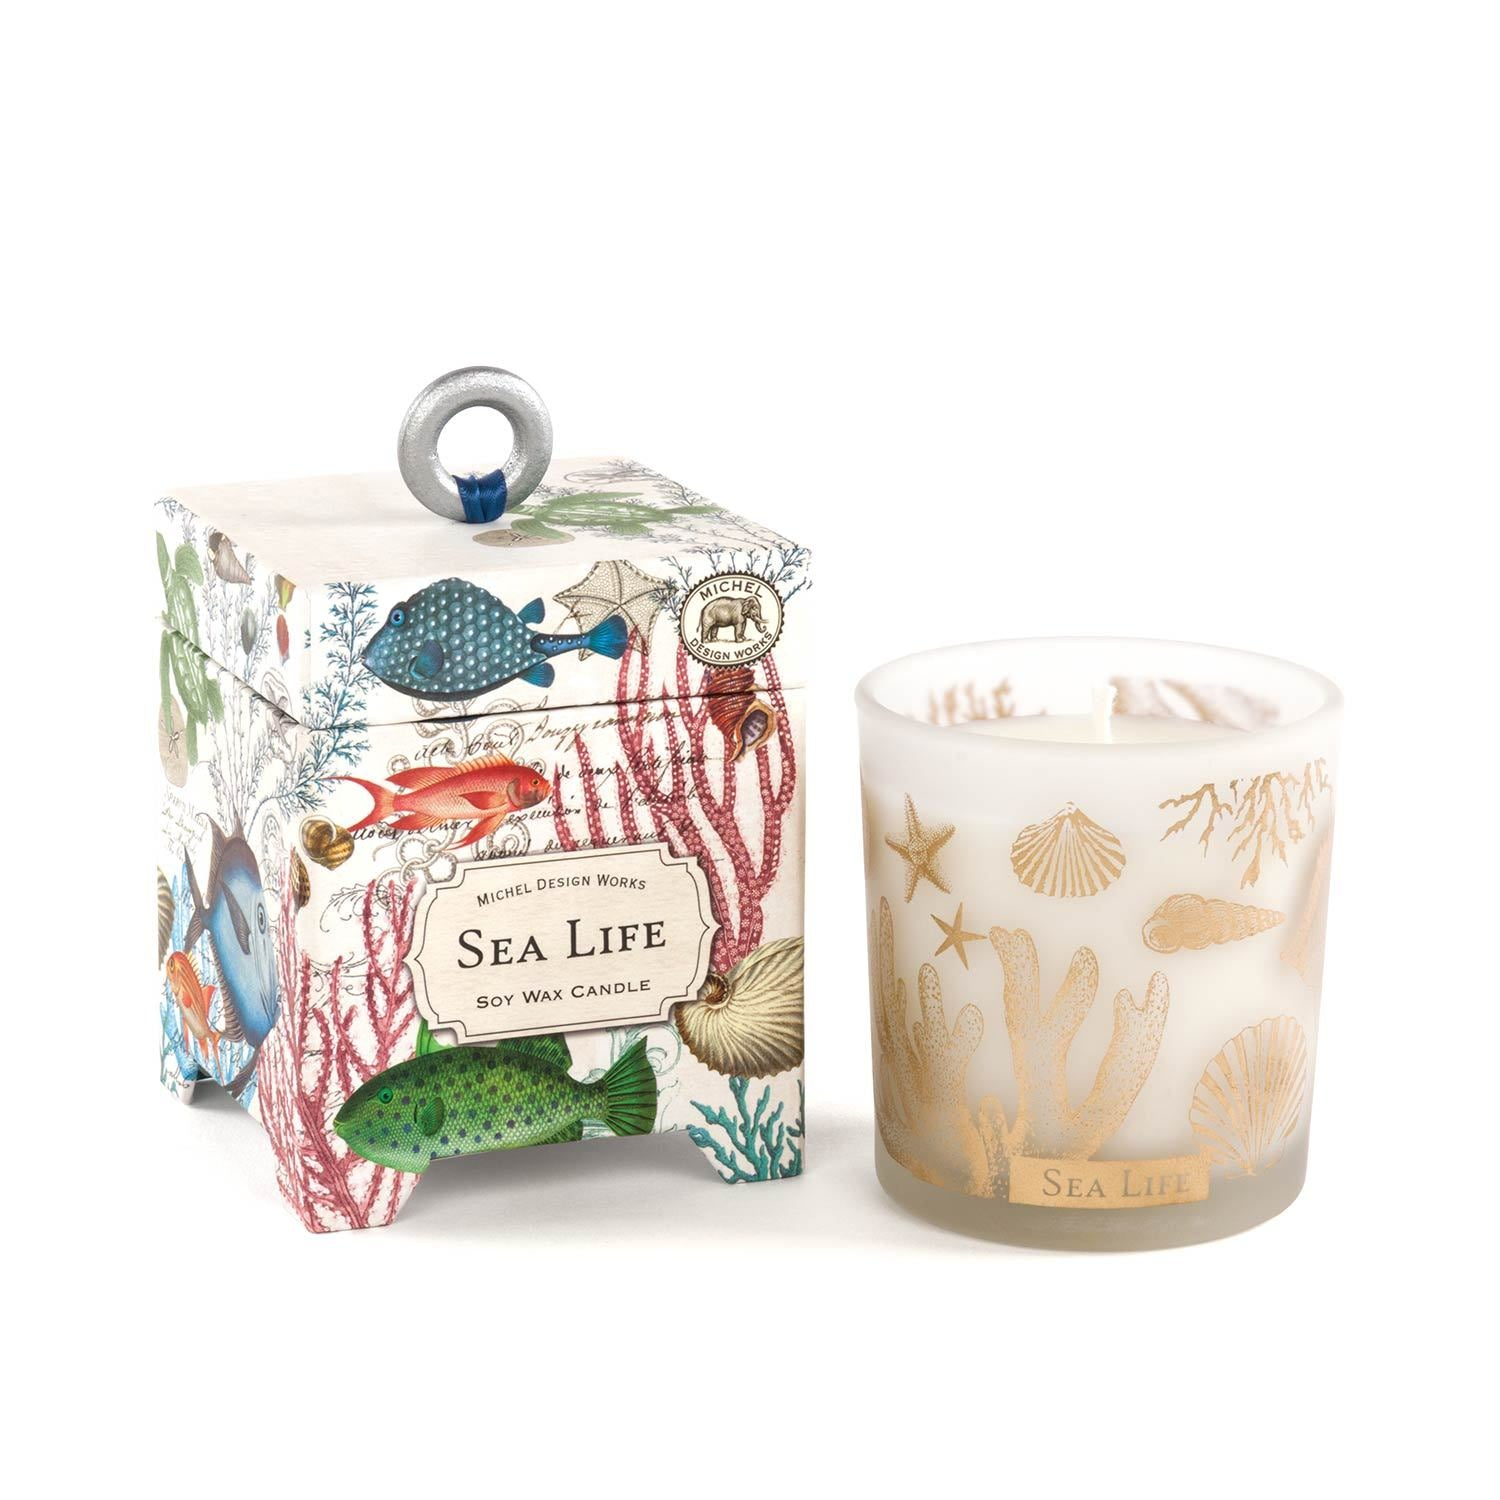 Sea Life 6.5 oz. Soy Wax Candle